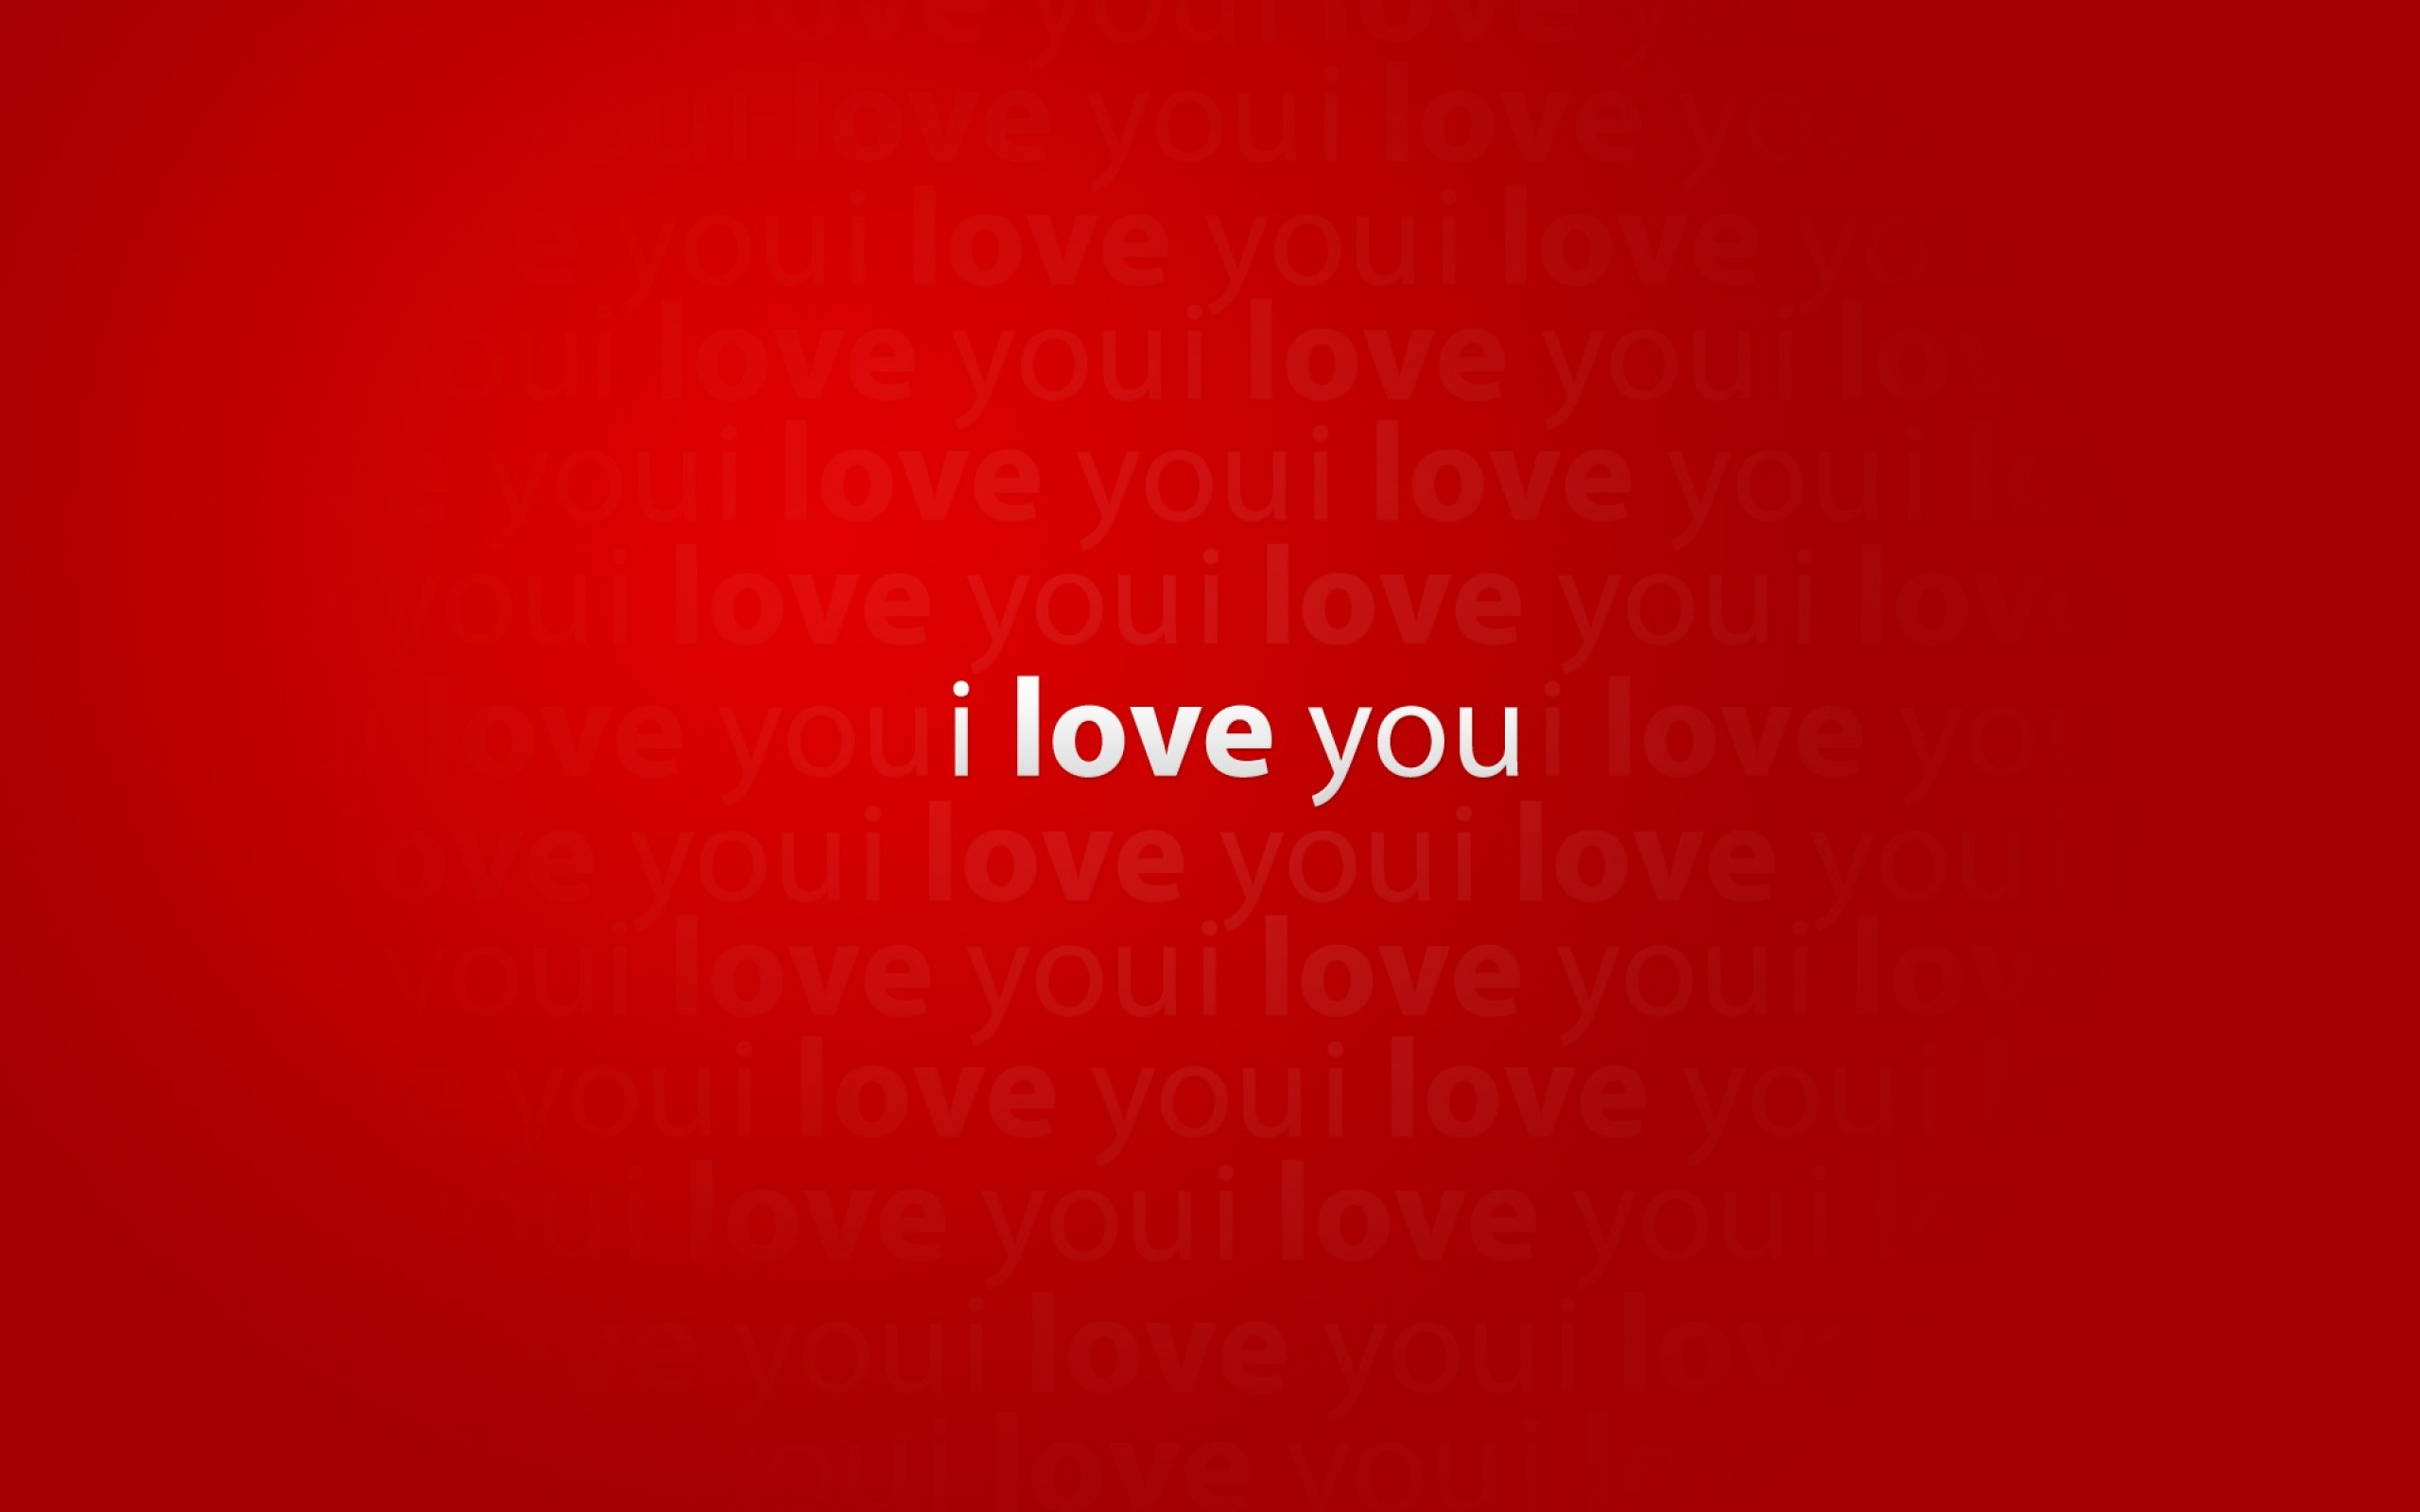 Love Wallpapers 2560x1600 : 2560x1600 I love you desktop Pc and Mac wallpaper